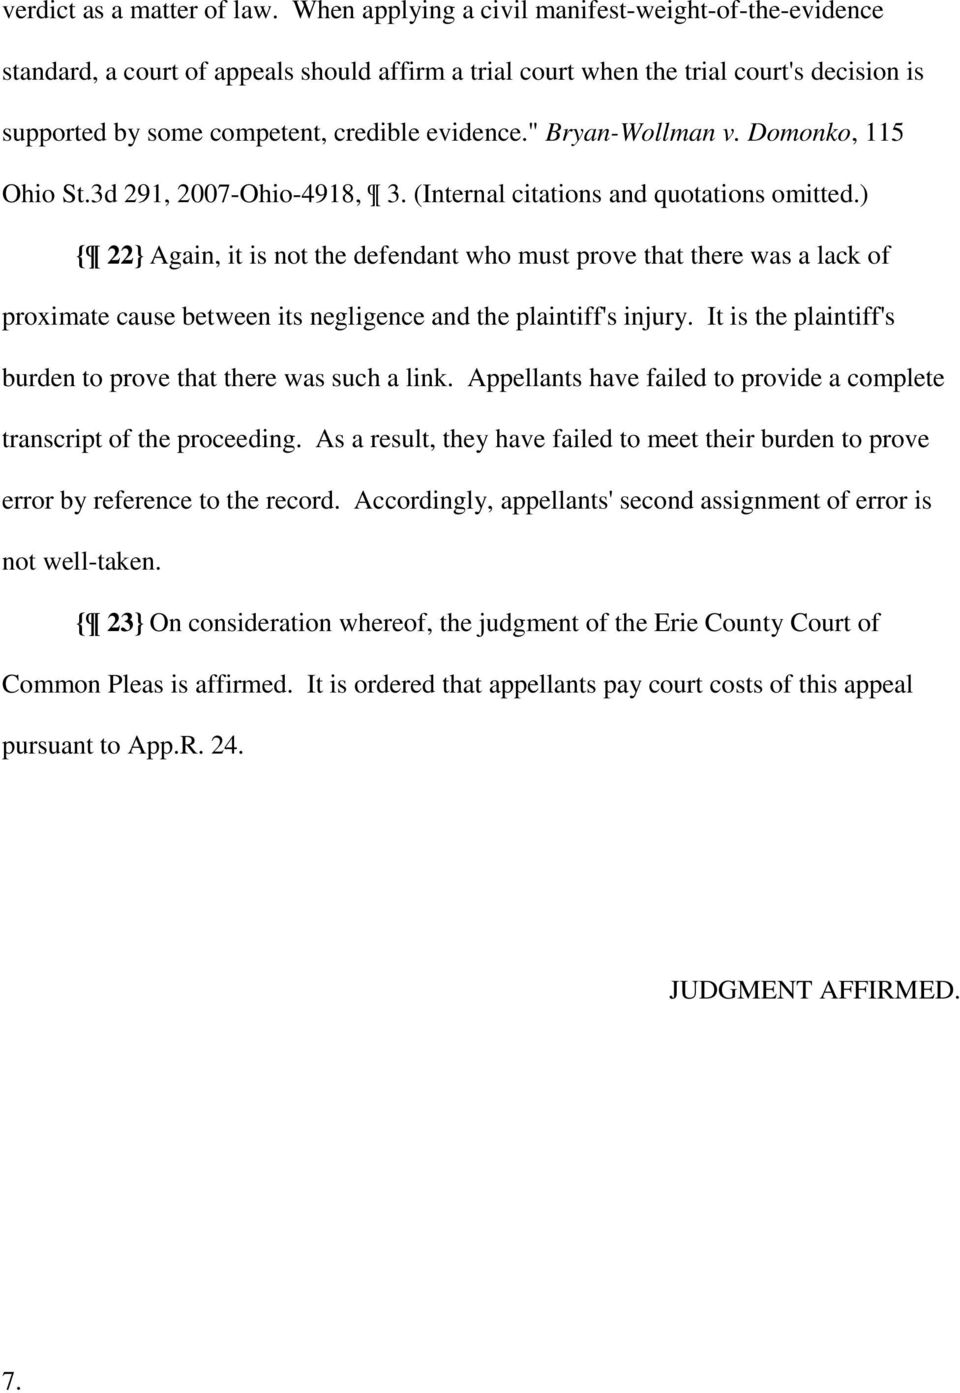 """ Bryan-Wollman v. Domonko, 115 Ohio St.3d 291, 2007-Ohio-4918, 3. (Internal citations and quotations omitted."